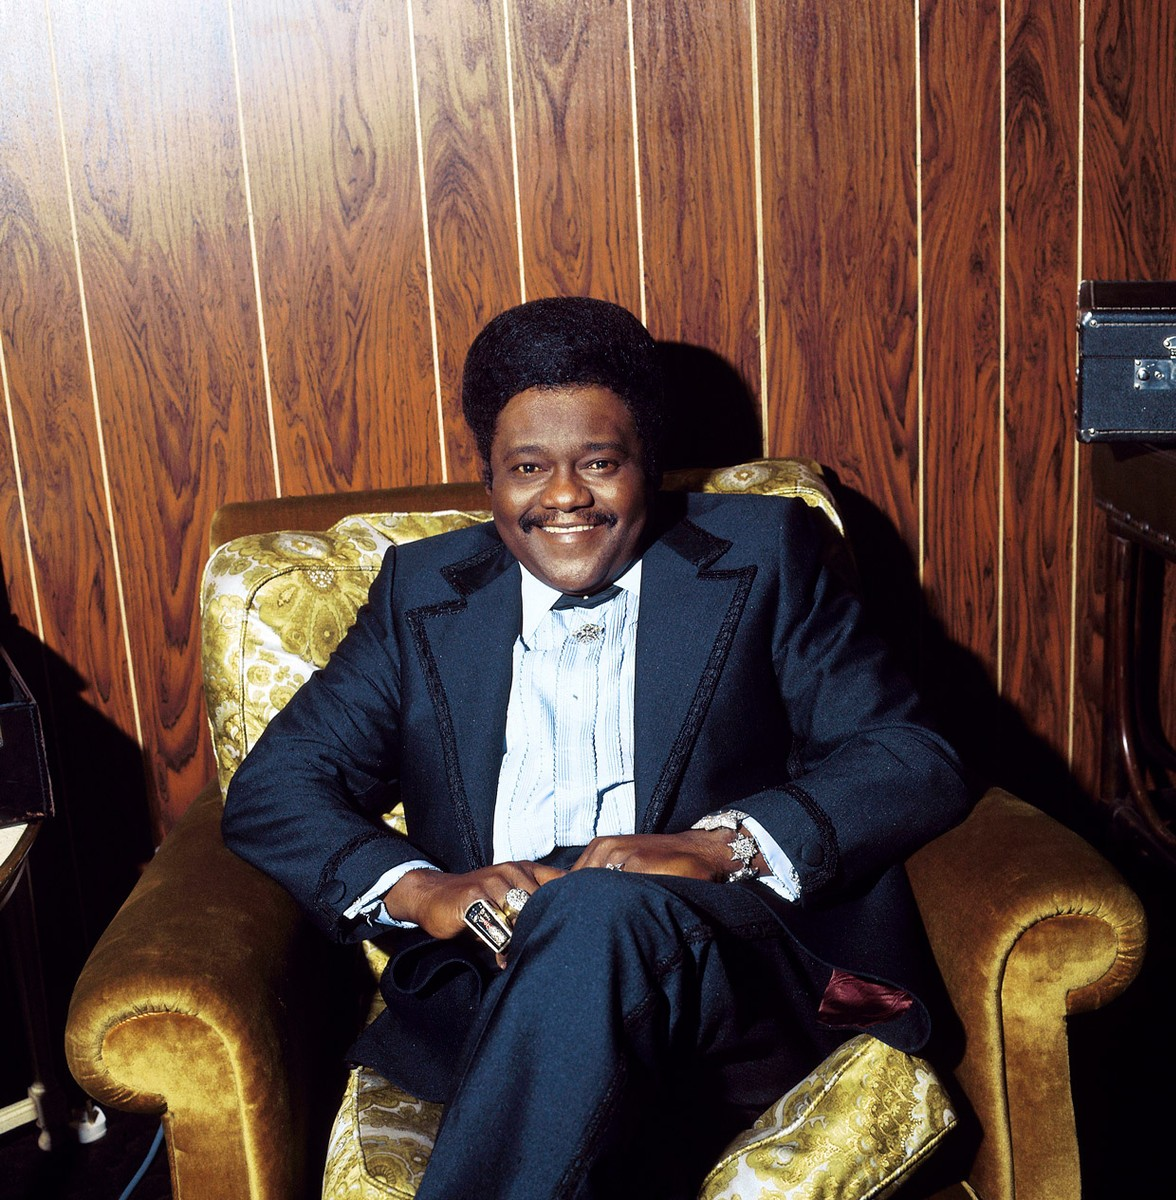 Fats Domino photographed in the 1970s.